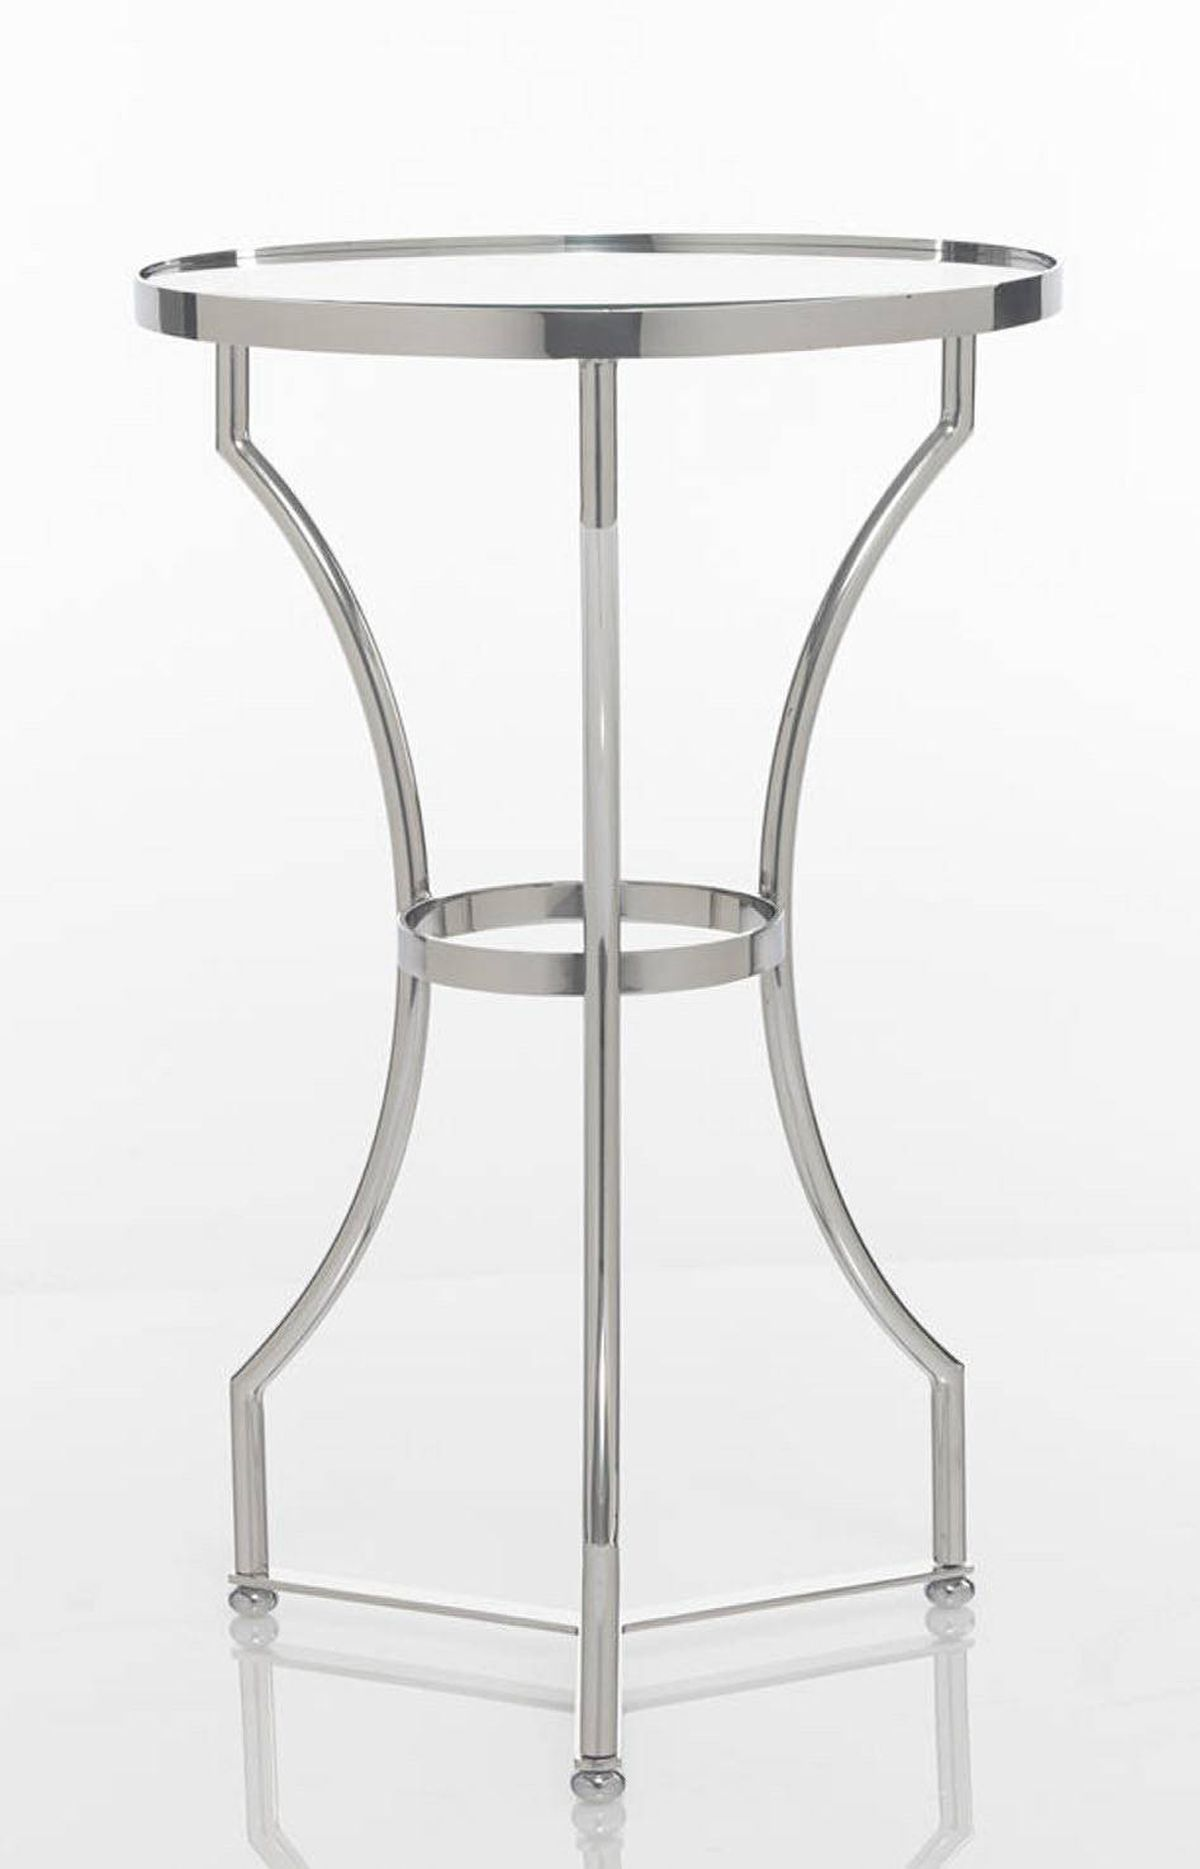 TREND: JAZZ-AGE Glass and stainless steel side table, $149.99 at HomeSense (www.homesense.ca).